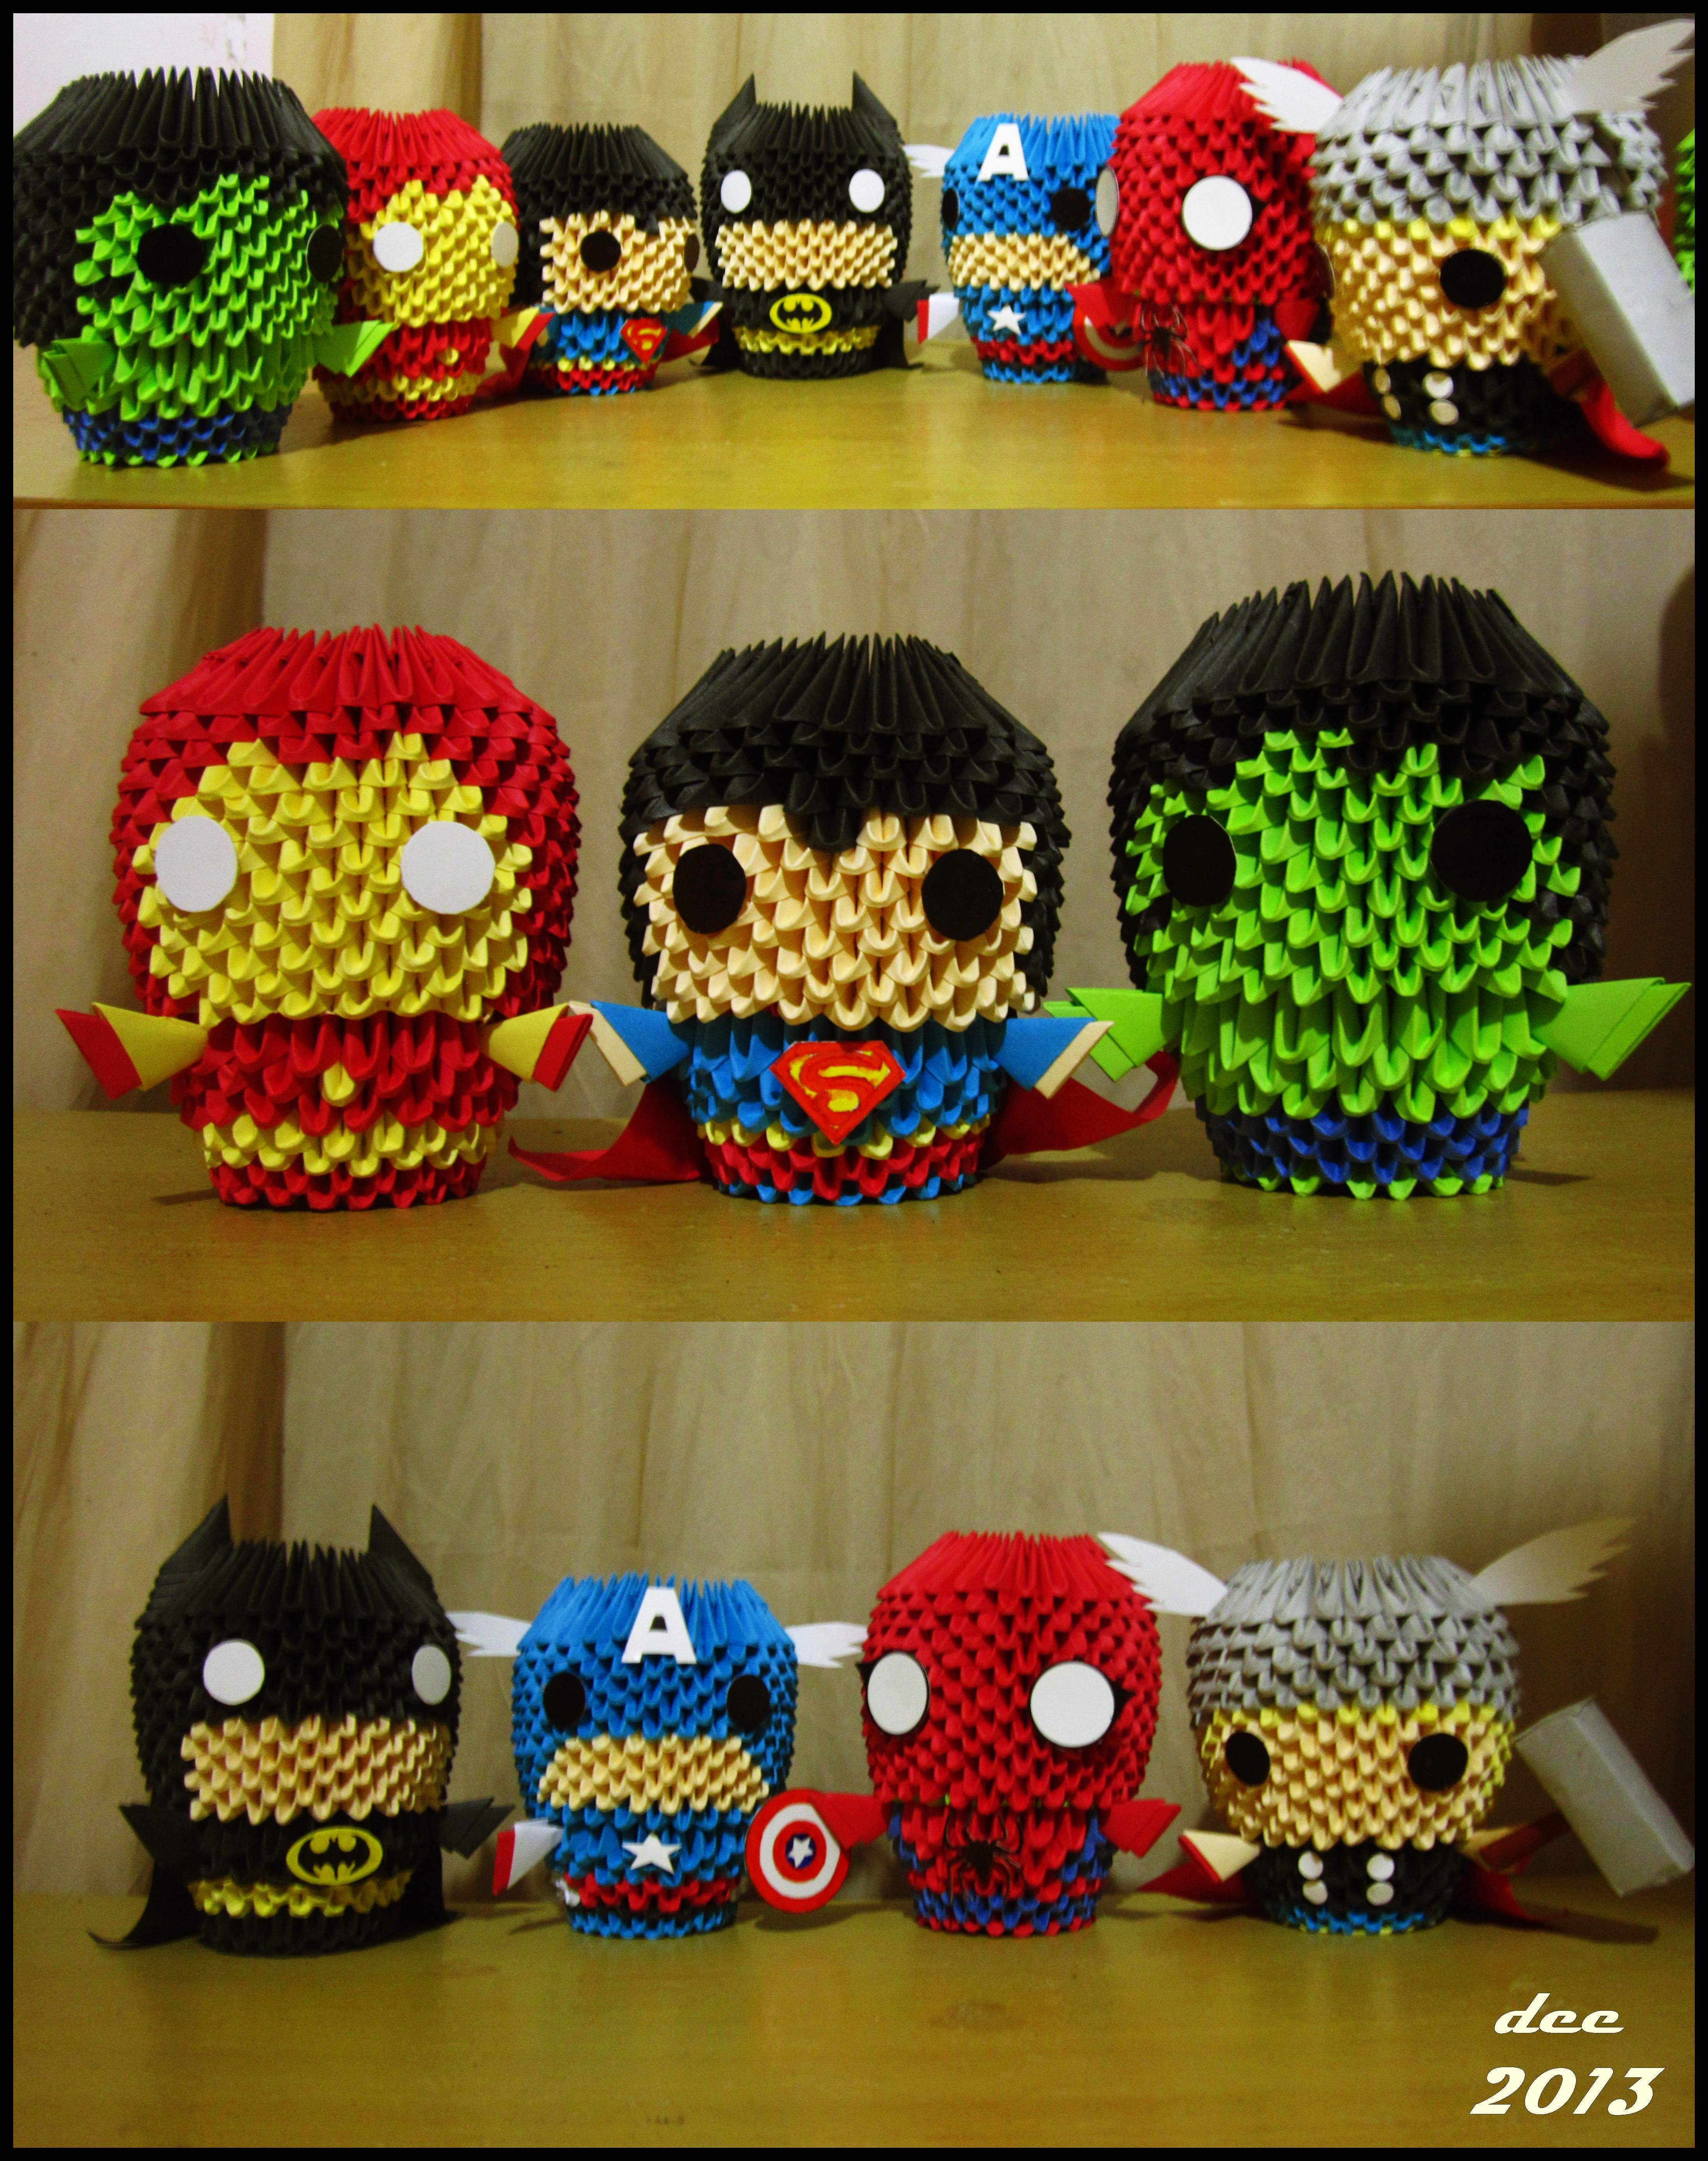 Marvel superheroes 3d origami by deerexx on deviantart - Origami 3d animaux ...